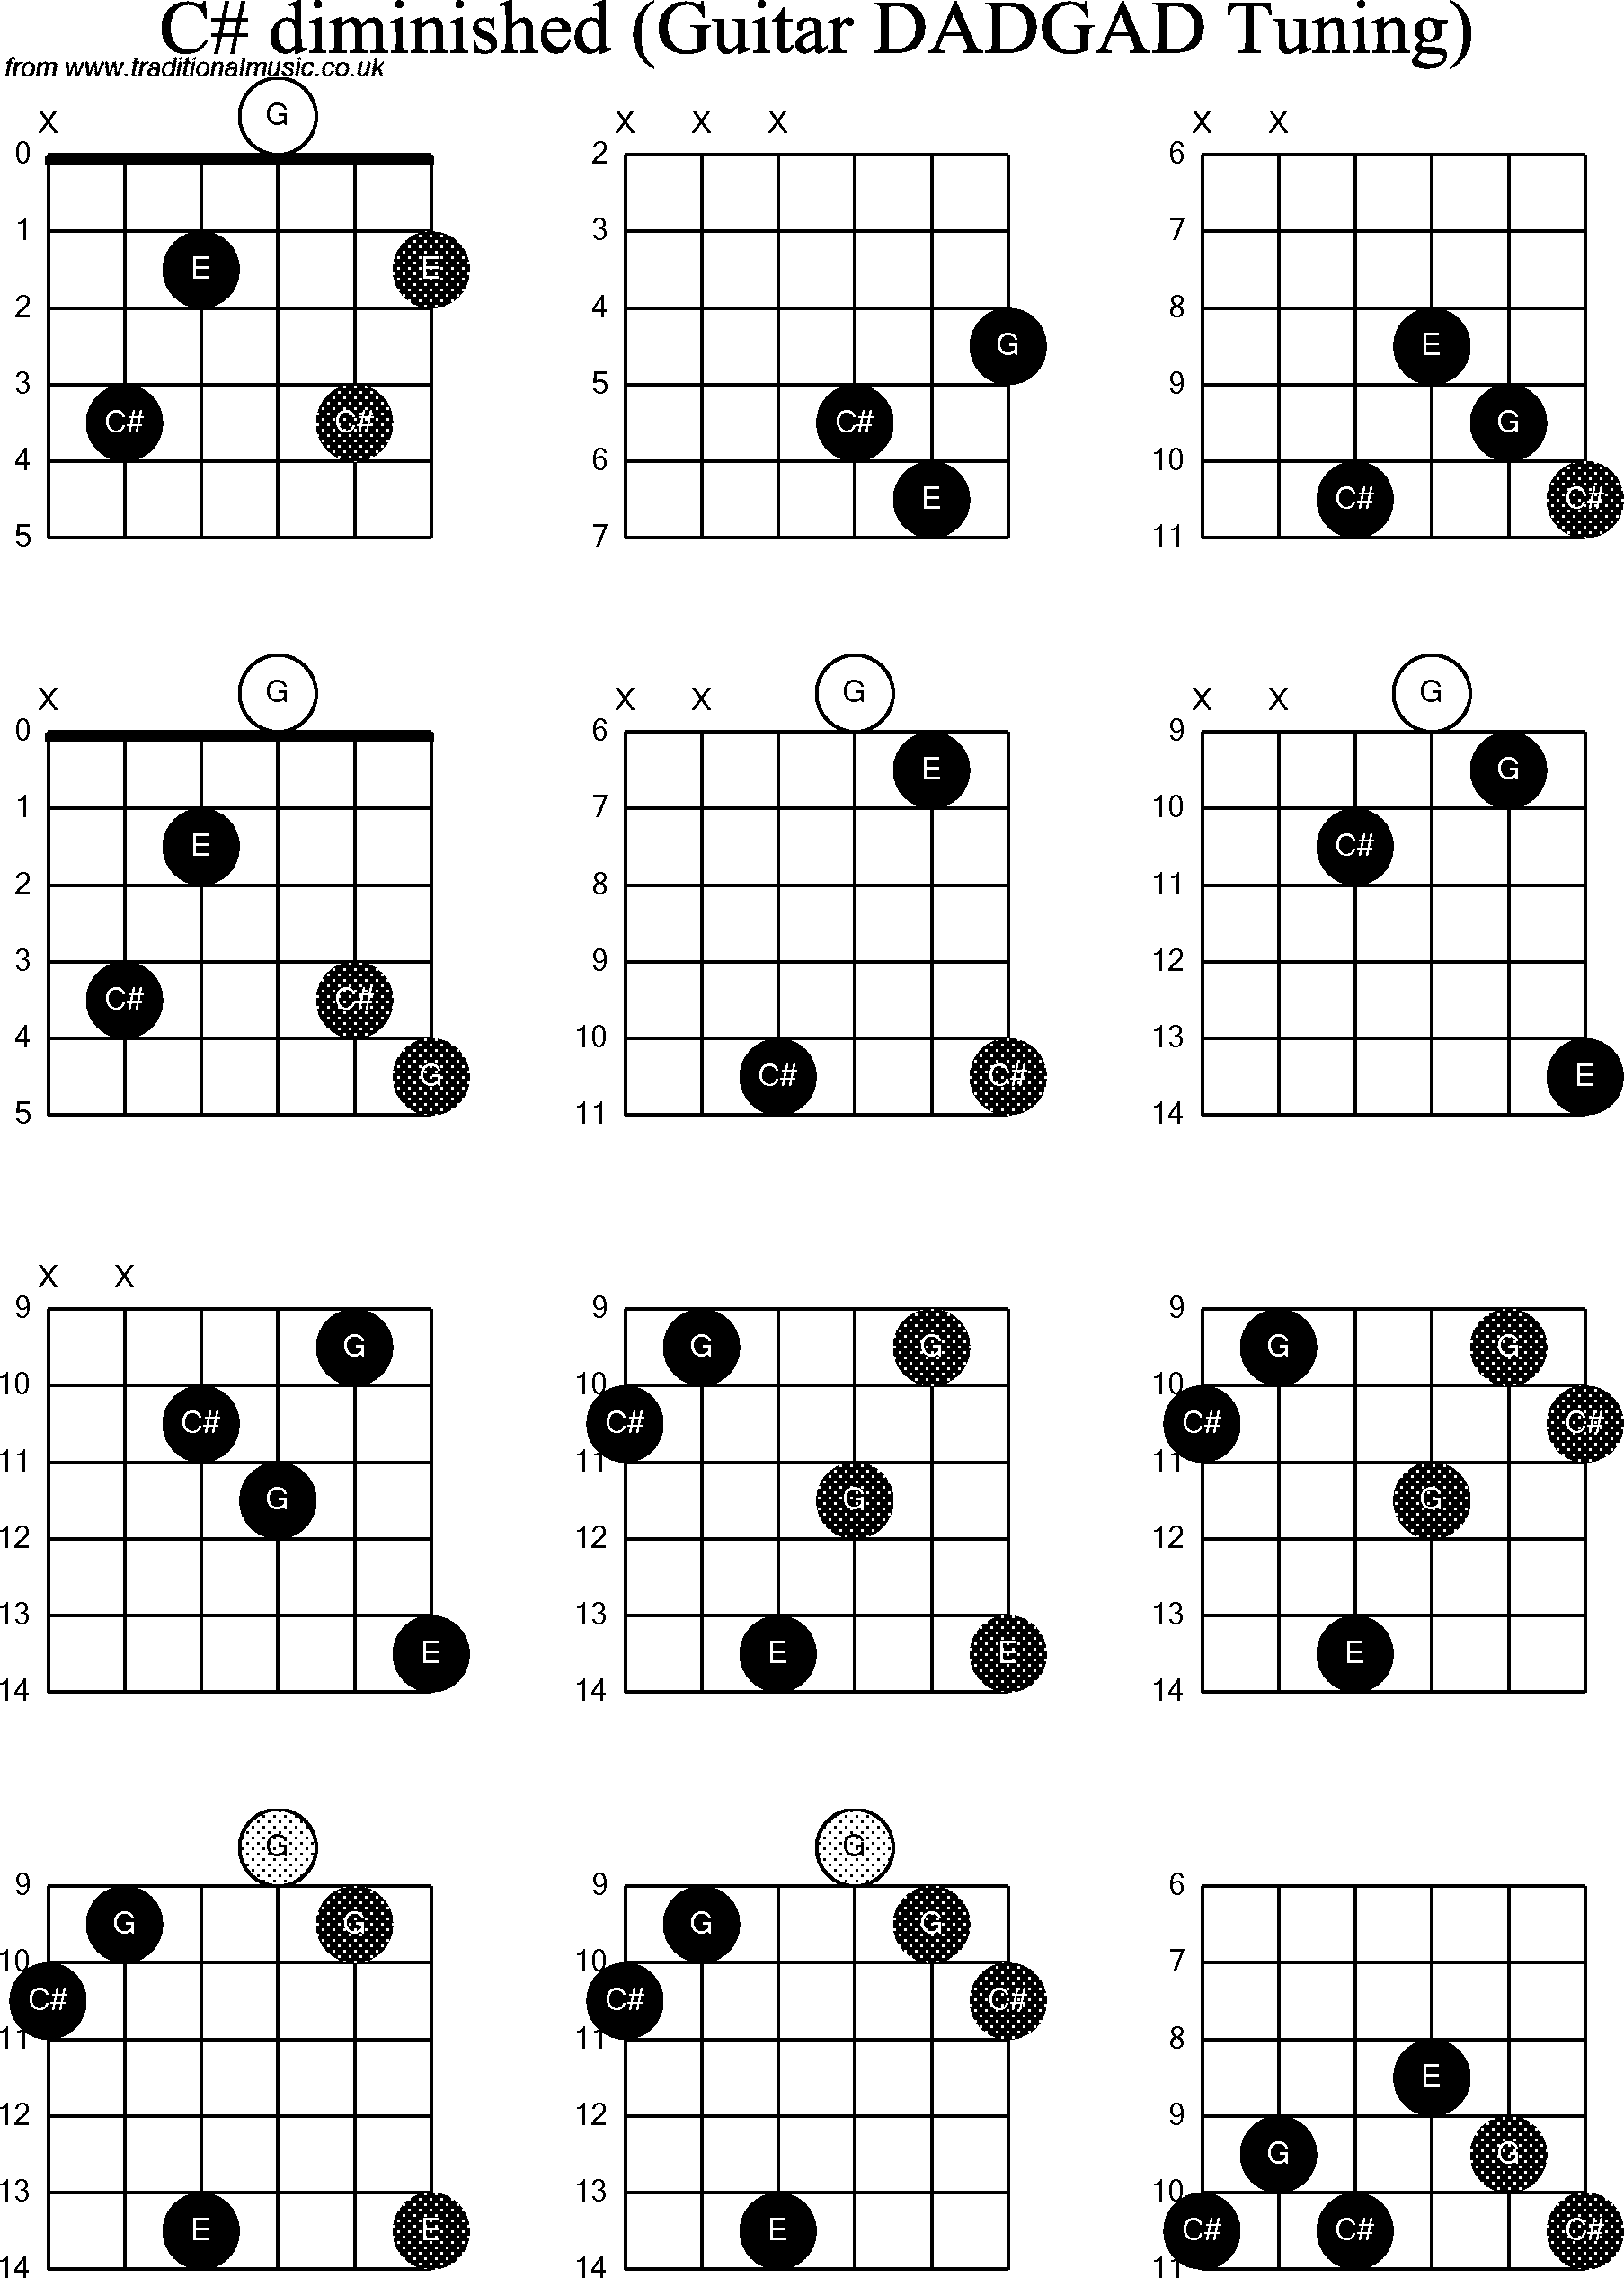 Chord Diagrams D Modal Guitar Dadgad C Sharp Diminished